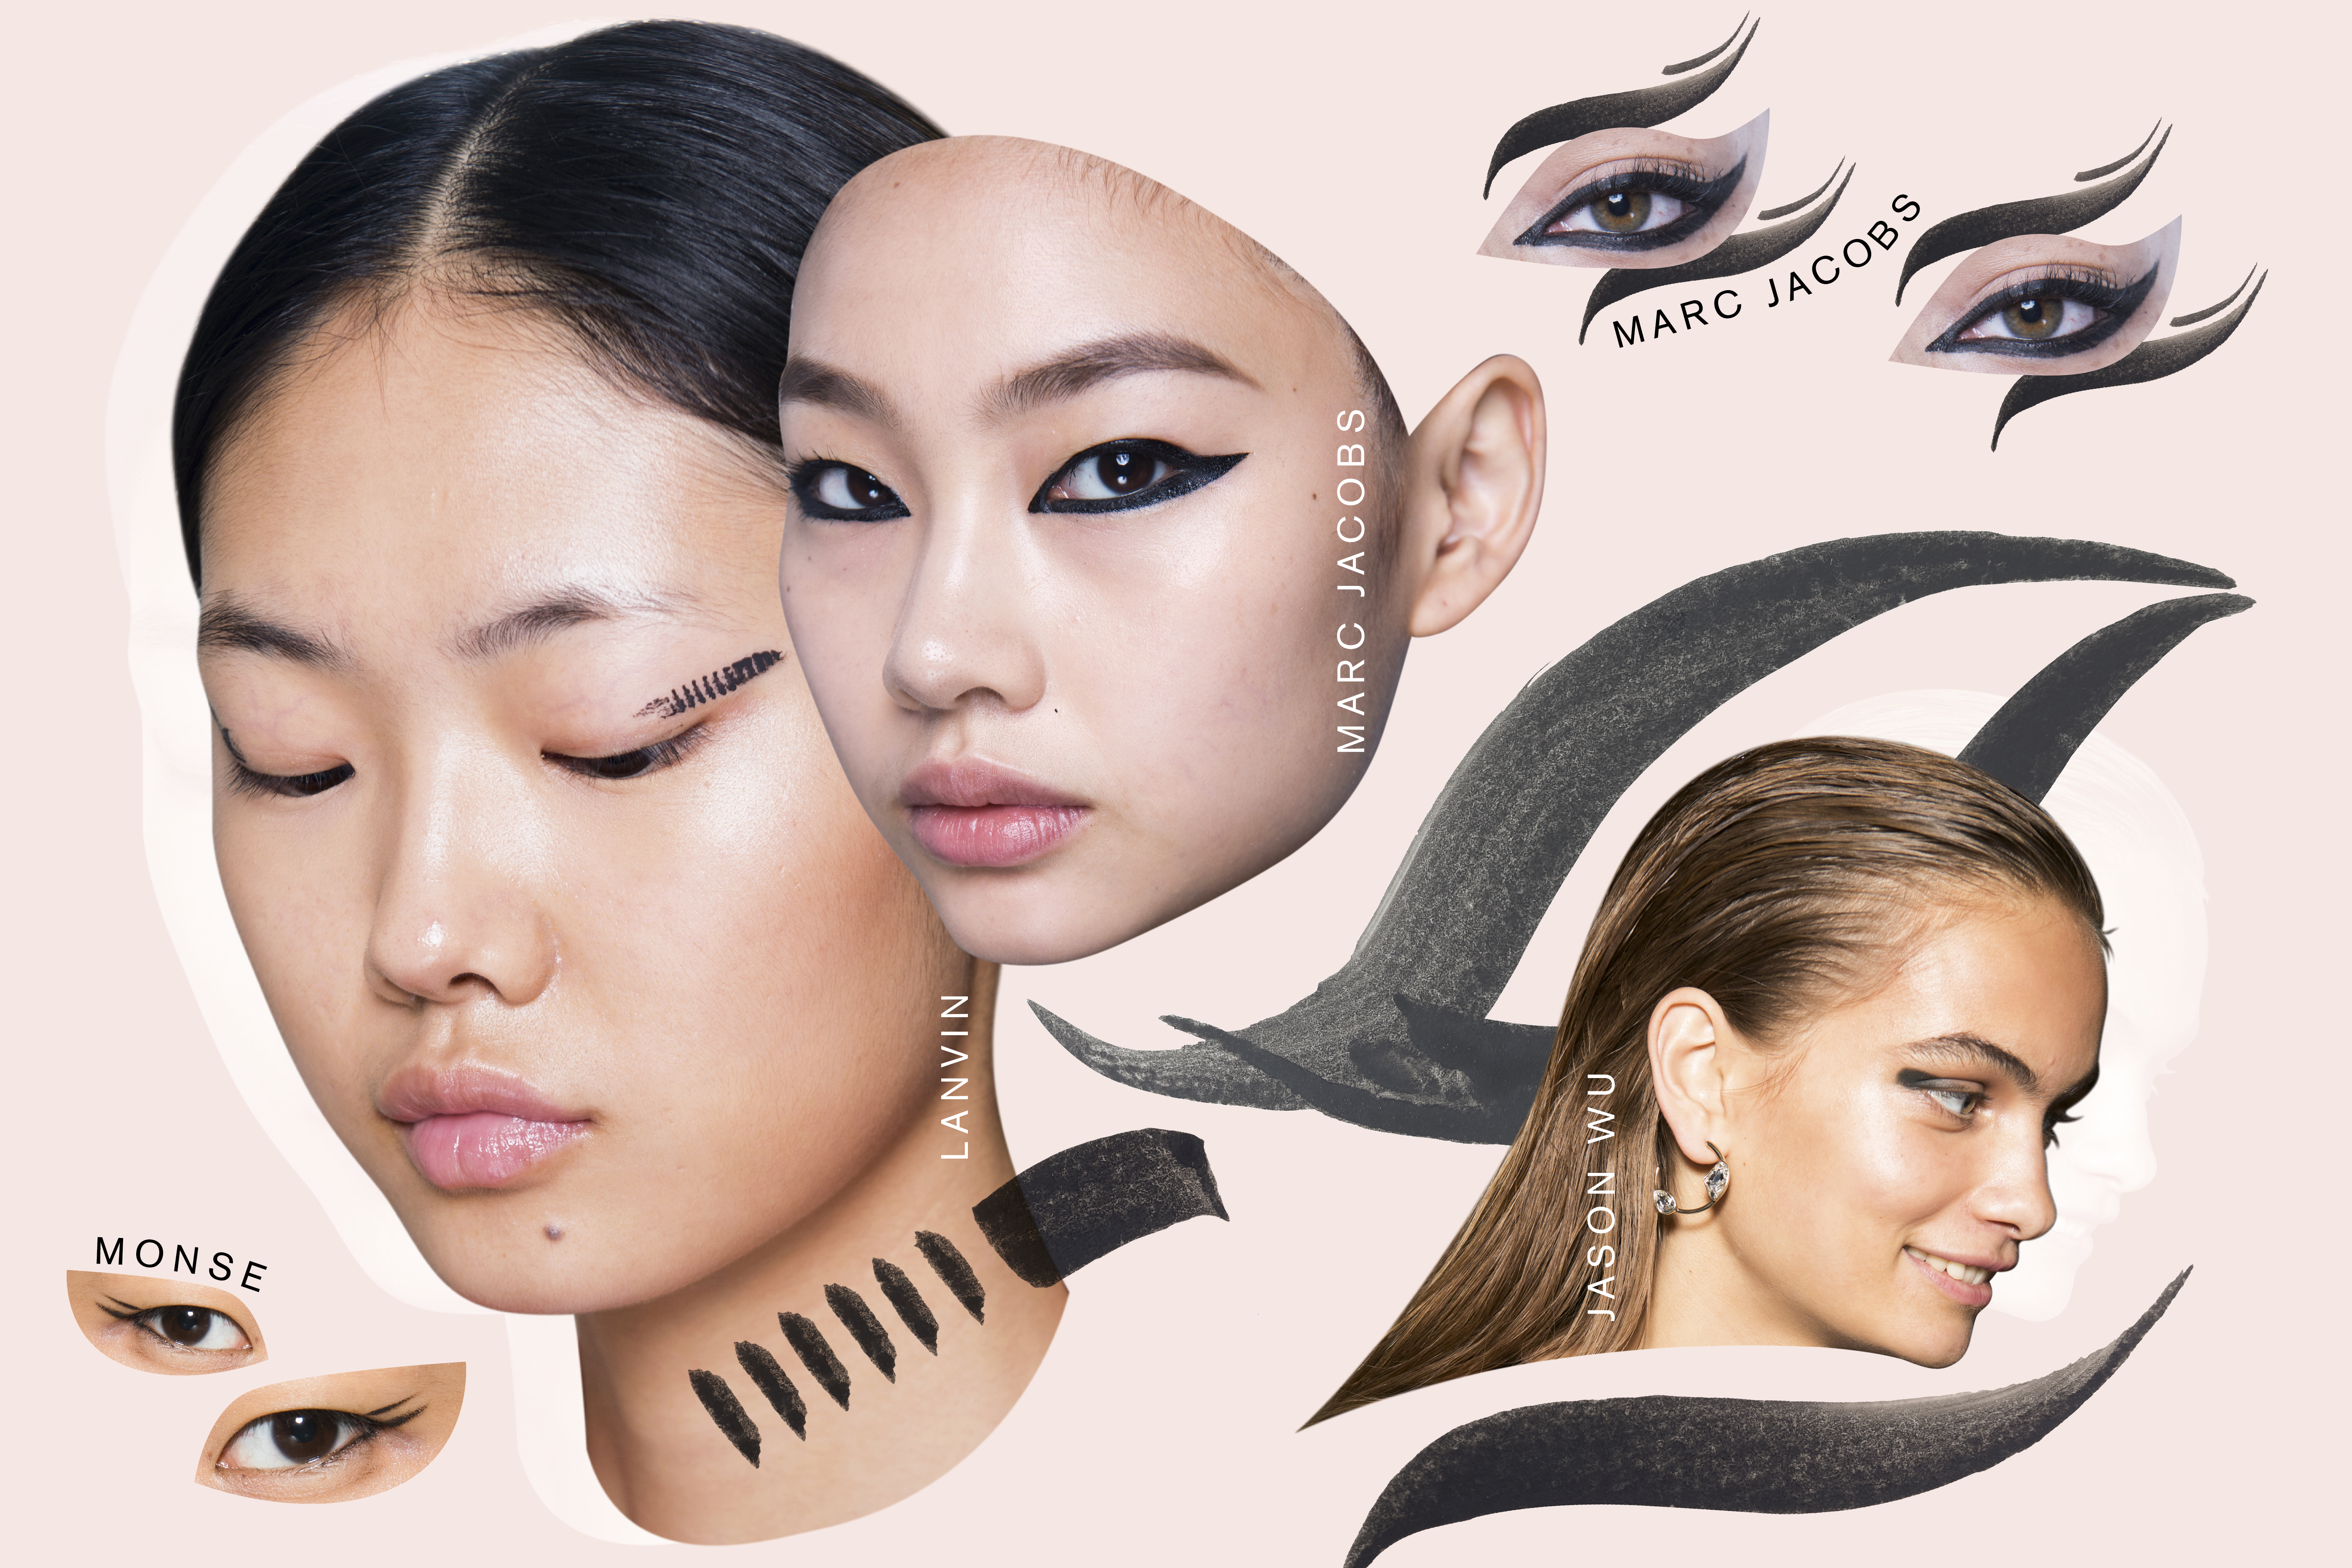 SS18 beauty trend report